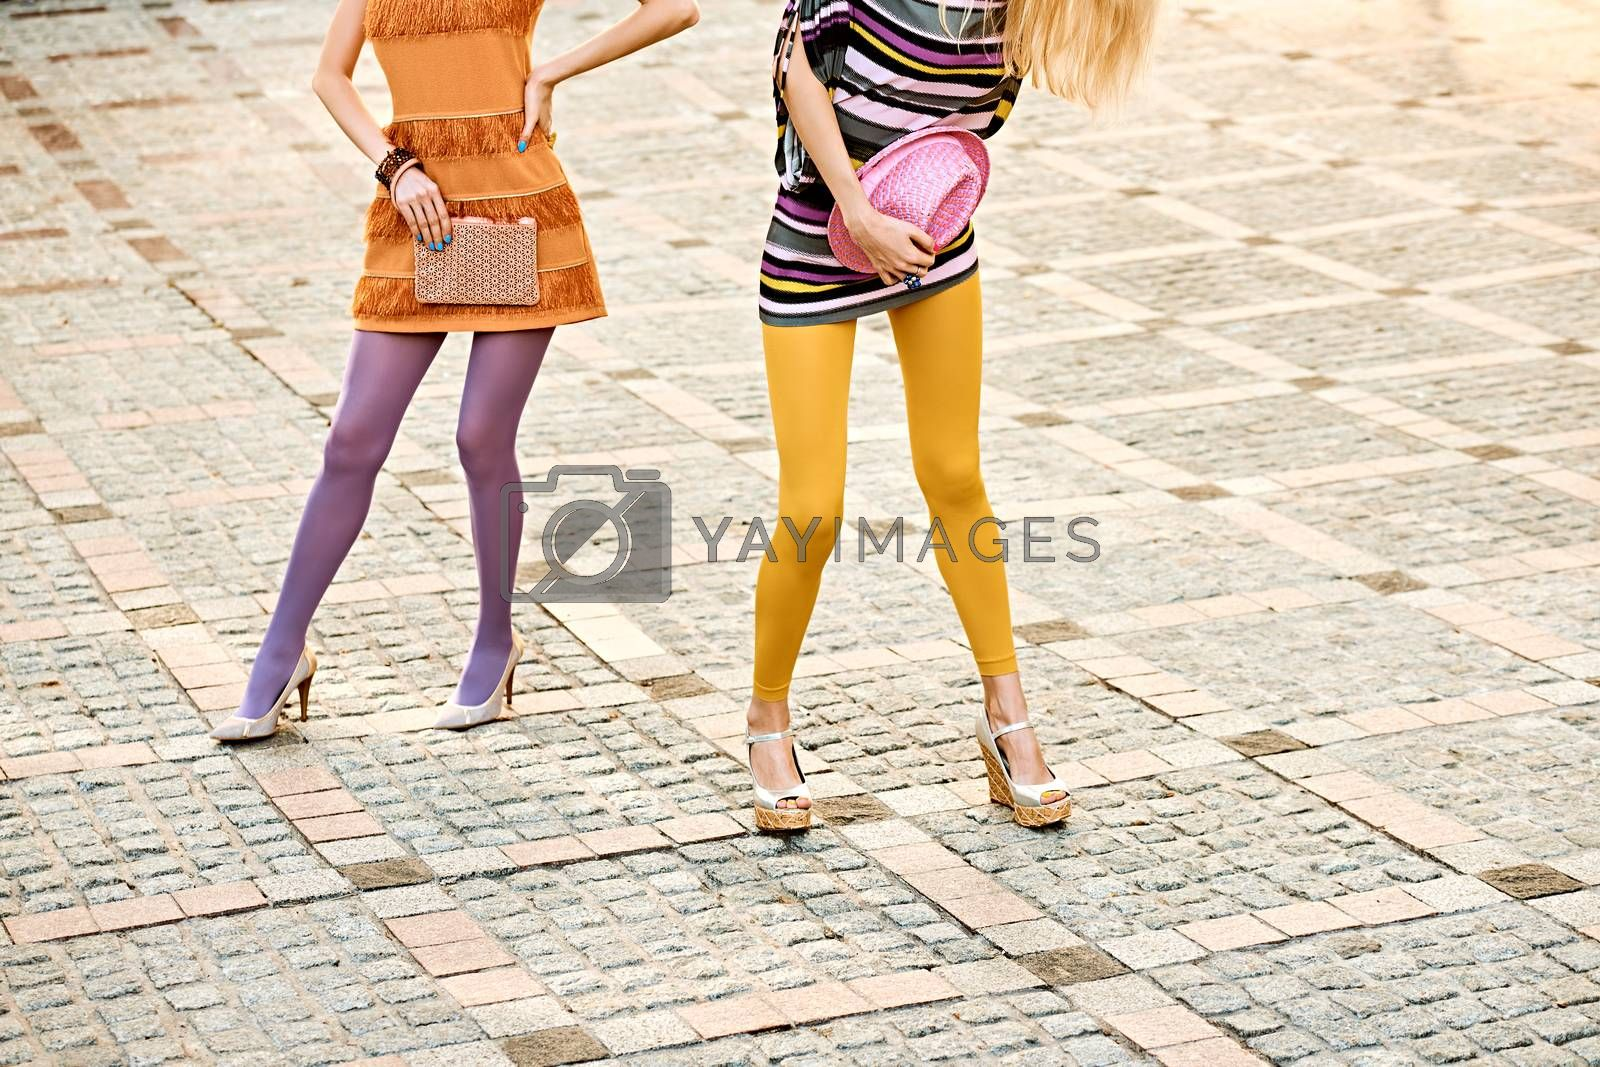 Fashion urban beauty people,friends, outdoor.Womens sexy legs, pantyhose, stylish shoes,clutch, hat.Playful hipster girls in trendy dresses on paving stone, creative unusual pose.Vivid disco lifestyle